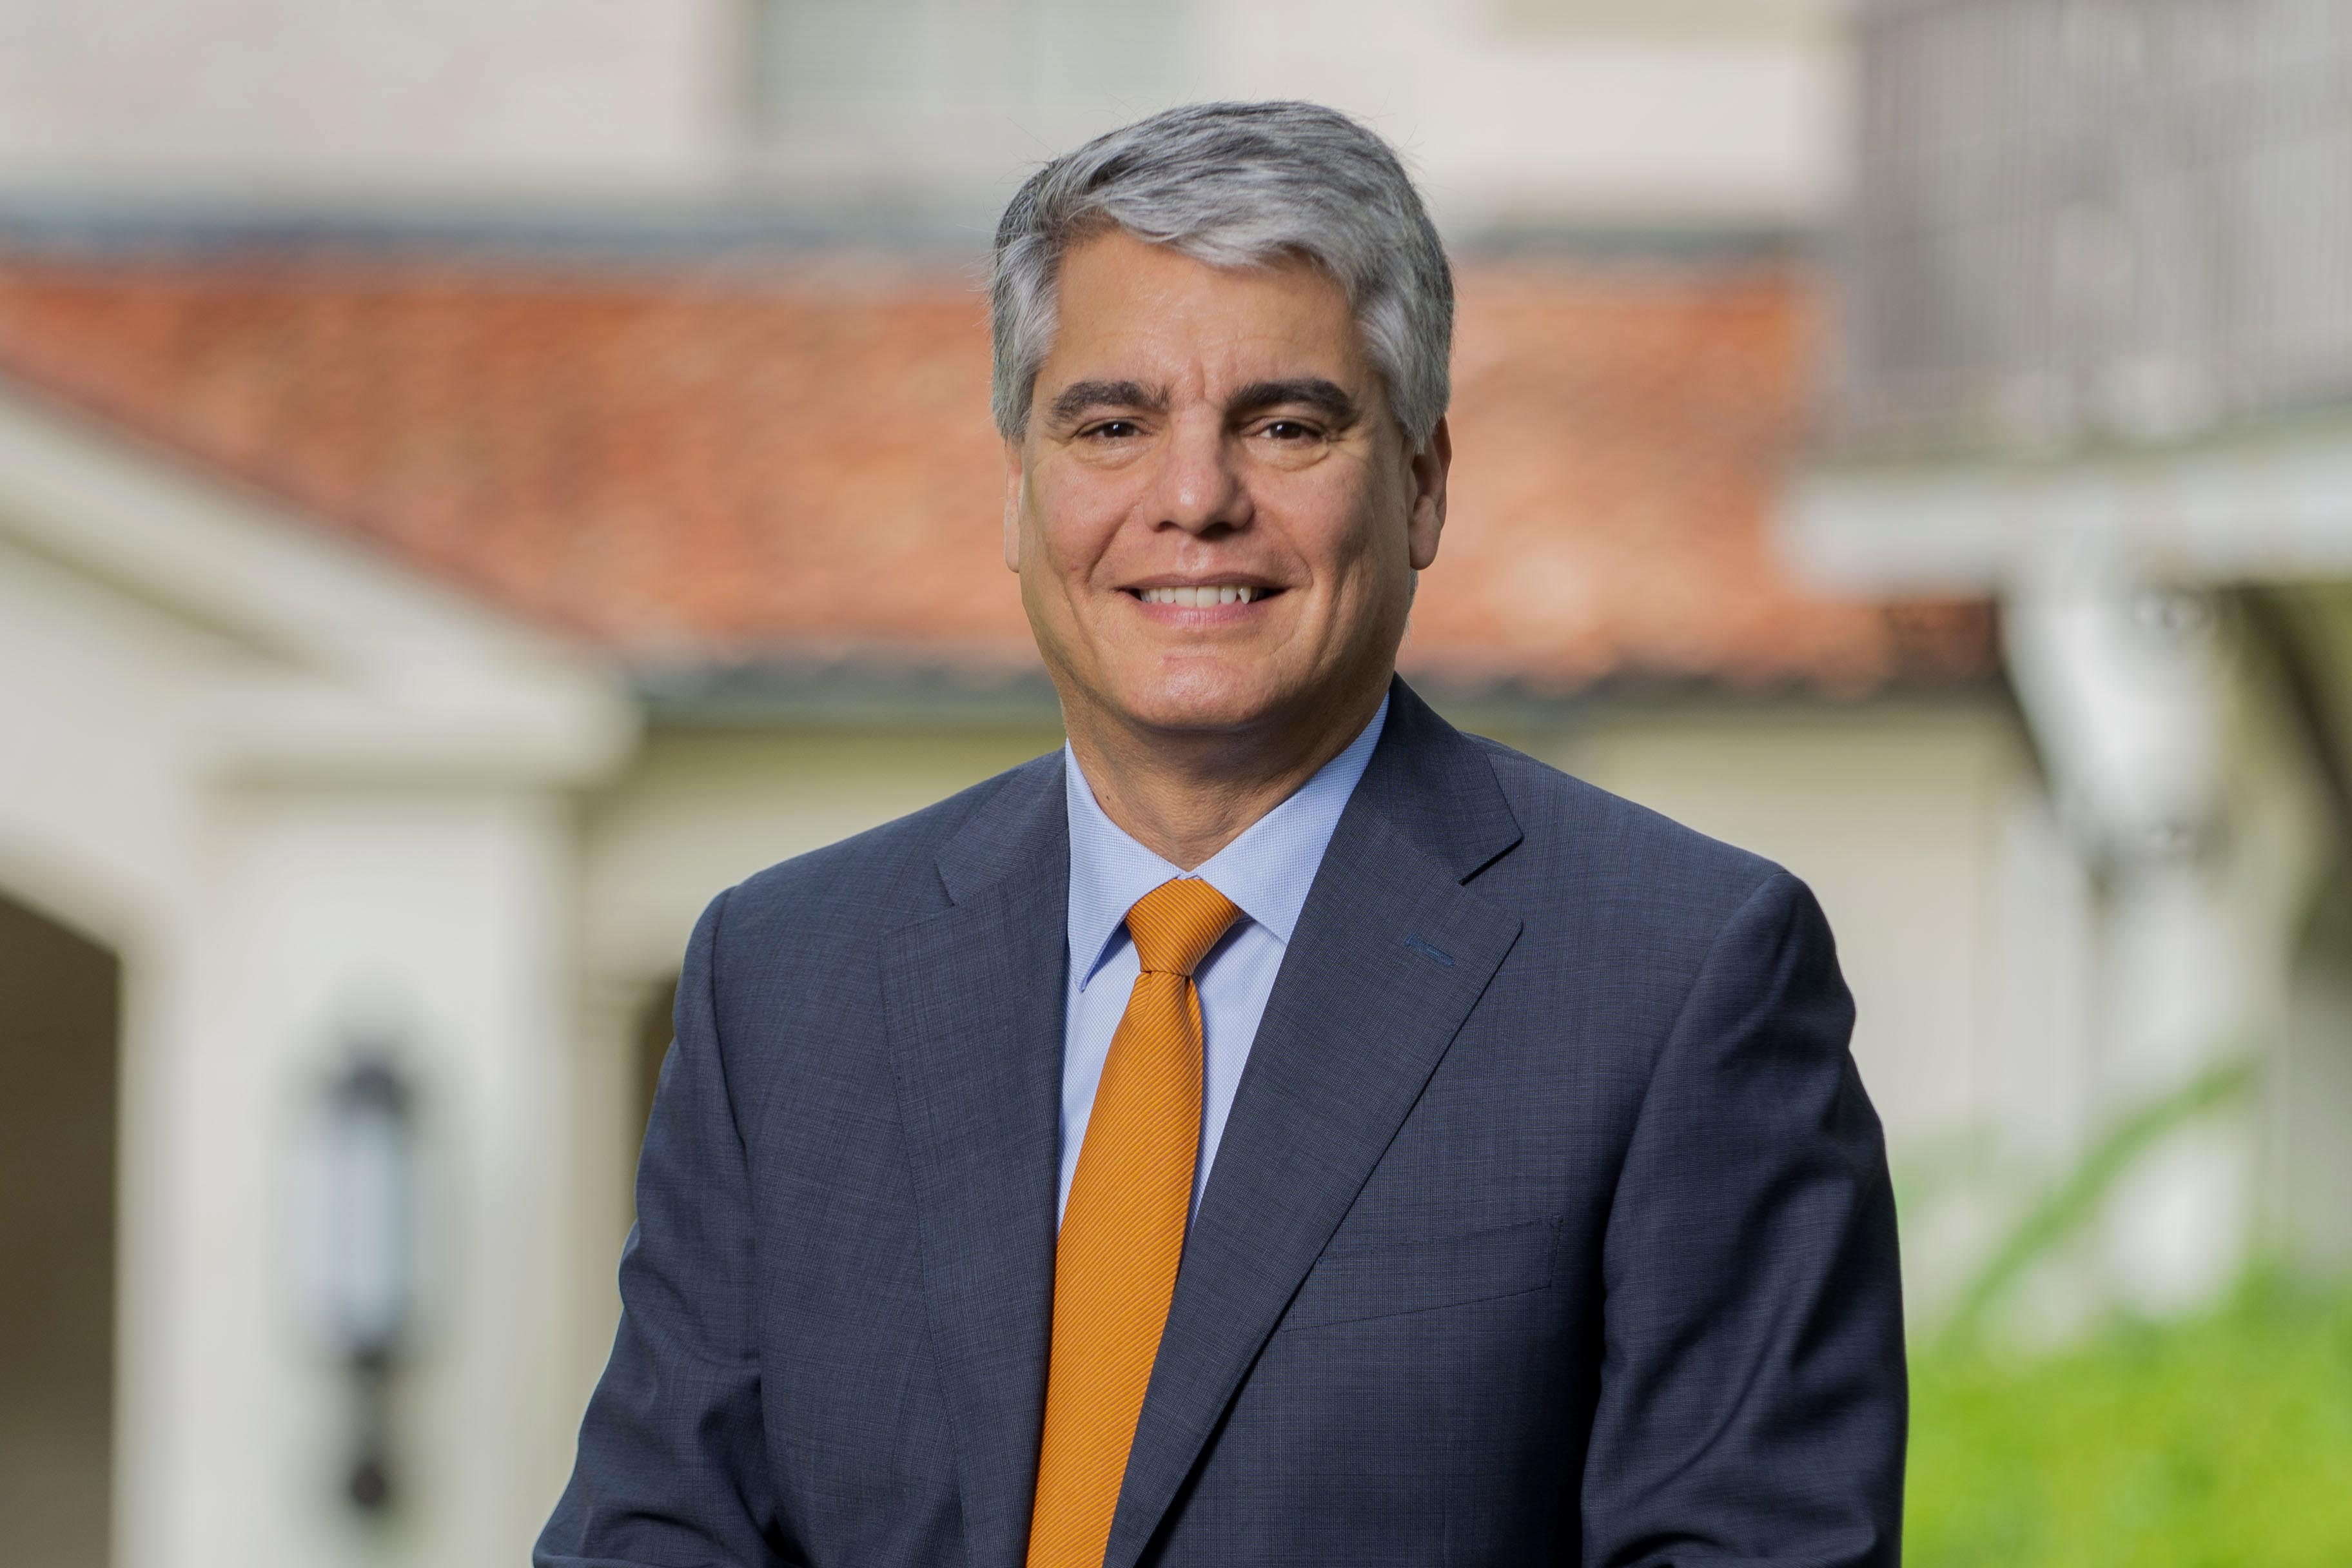 Gregory L. Fenves has been elected as the 21st president of Emory University by a unanimous vote of the board. niors were selected to receive the Bobby Jones scholarship.